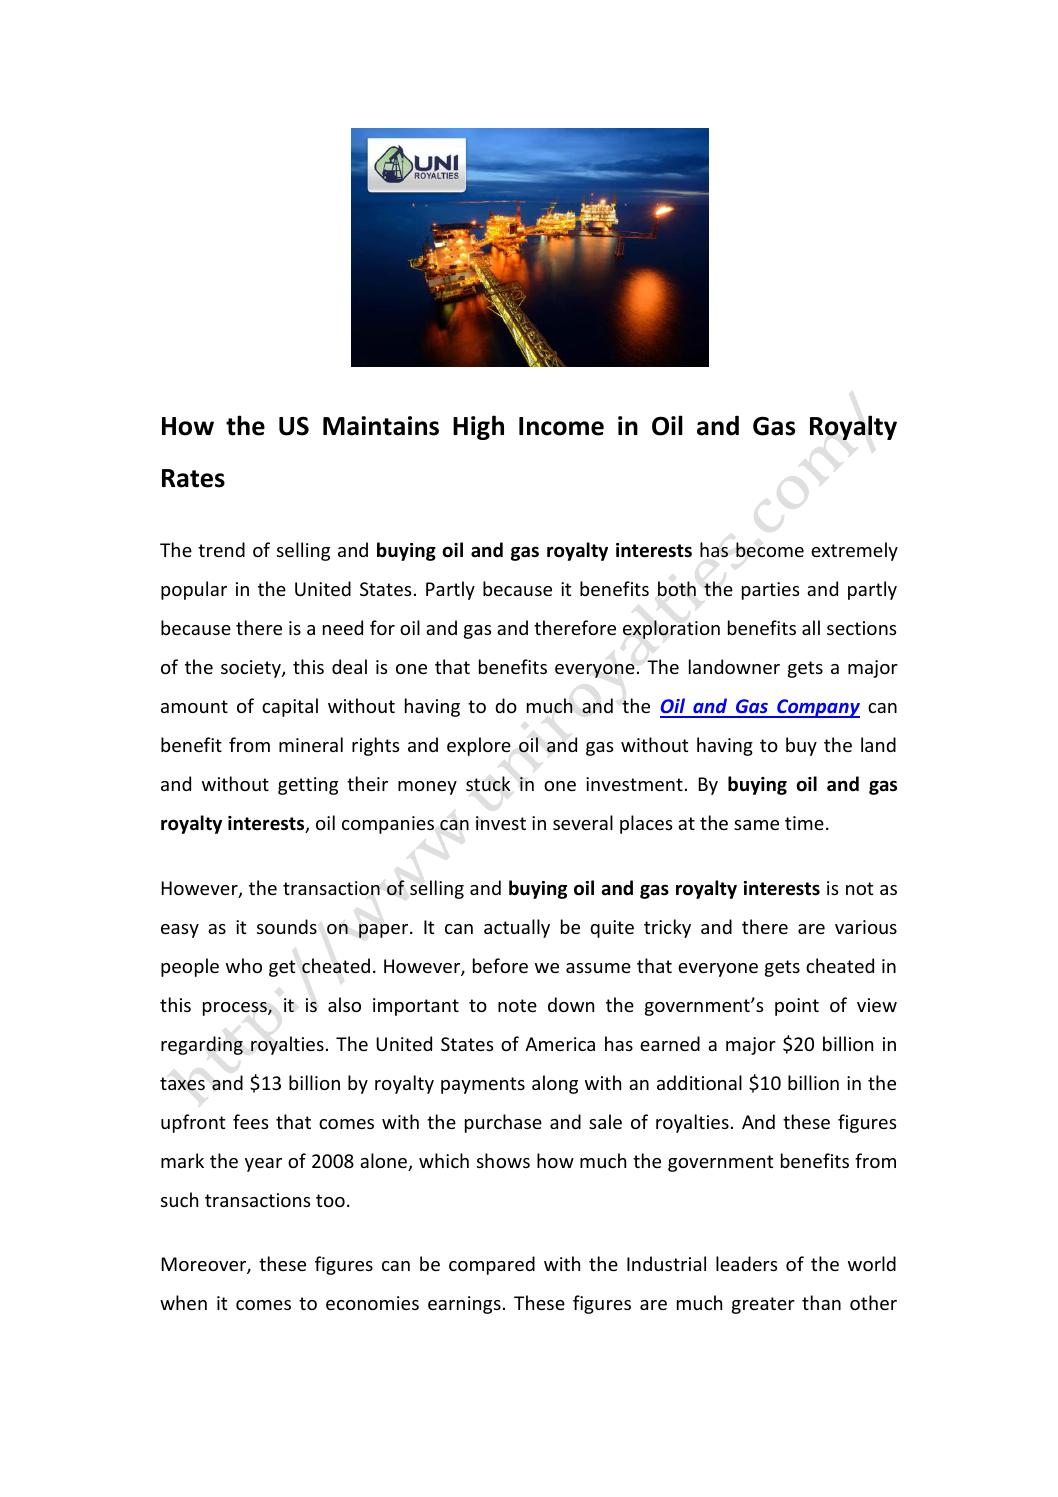 How the US Maintains High Income in Oil and Gas Royalty